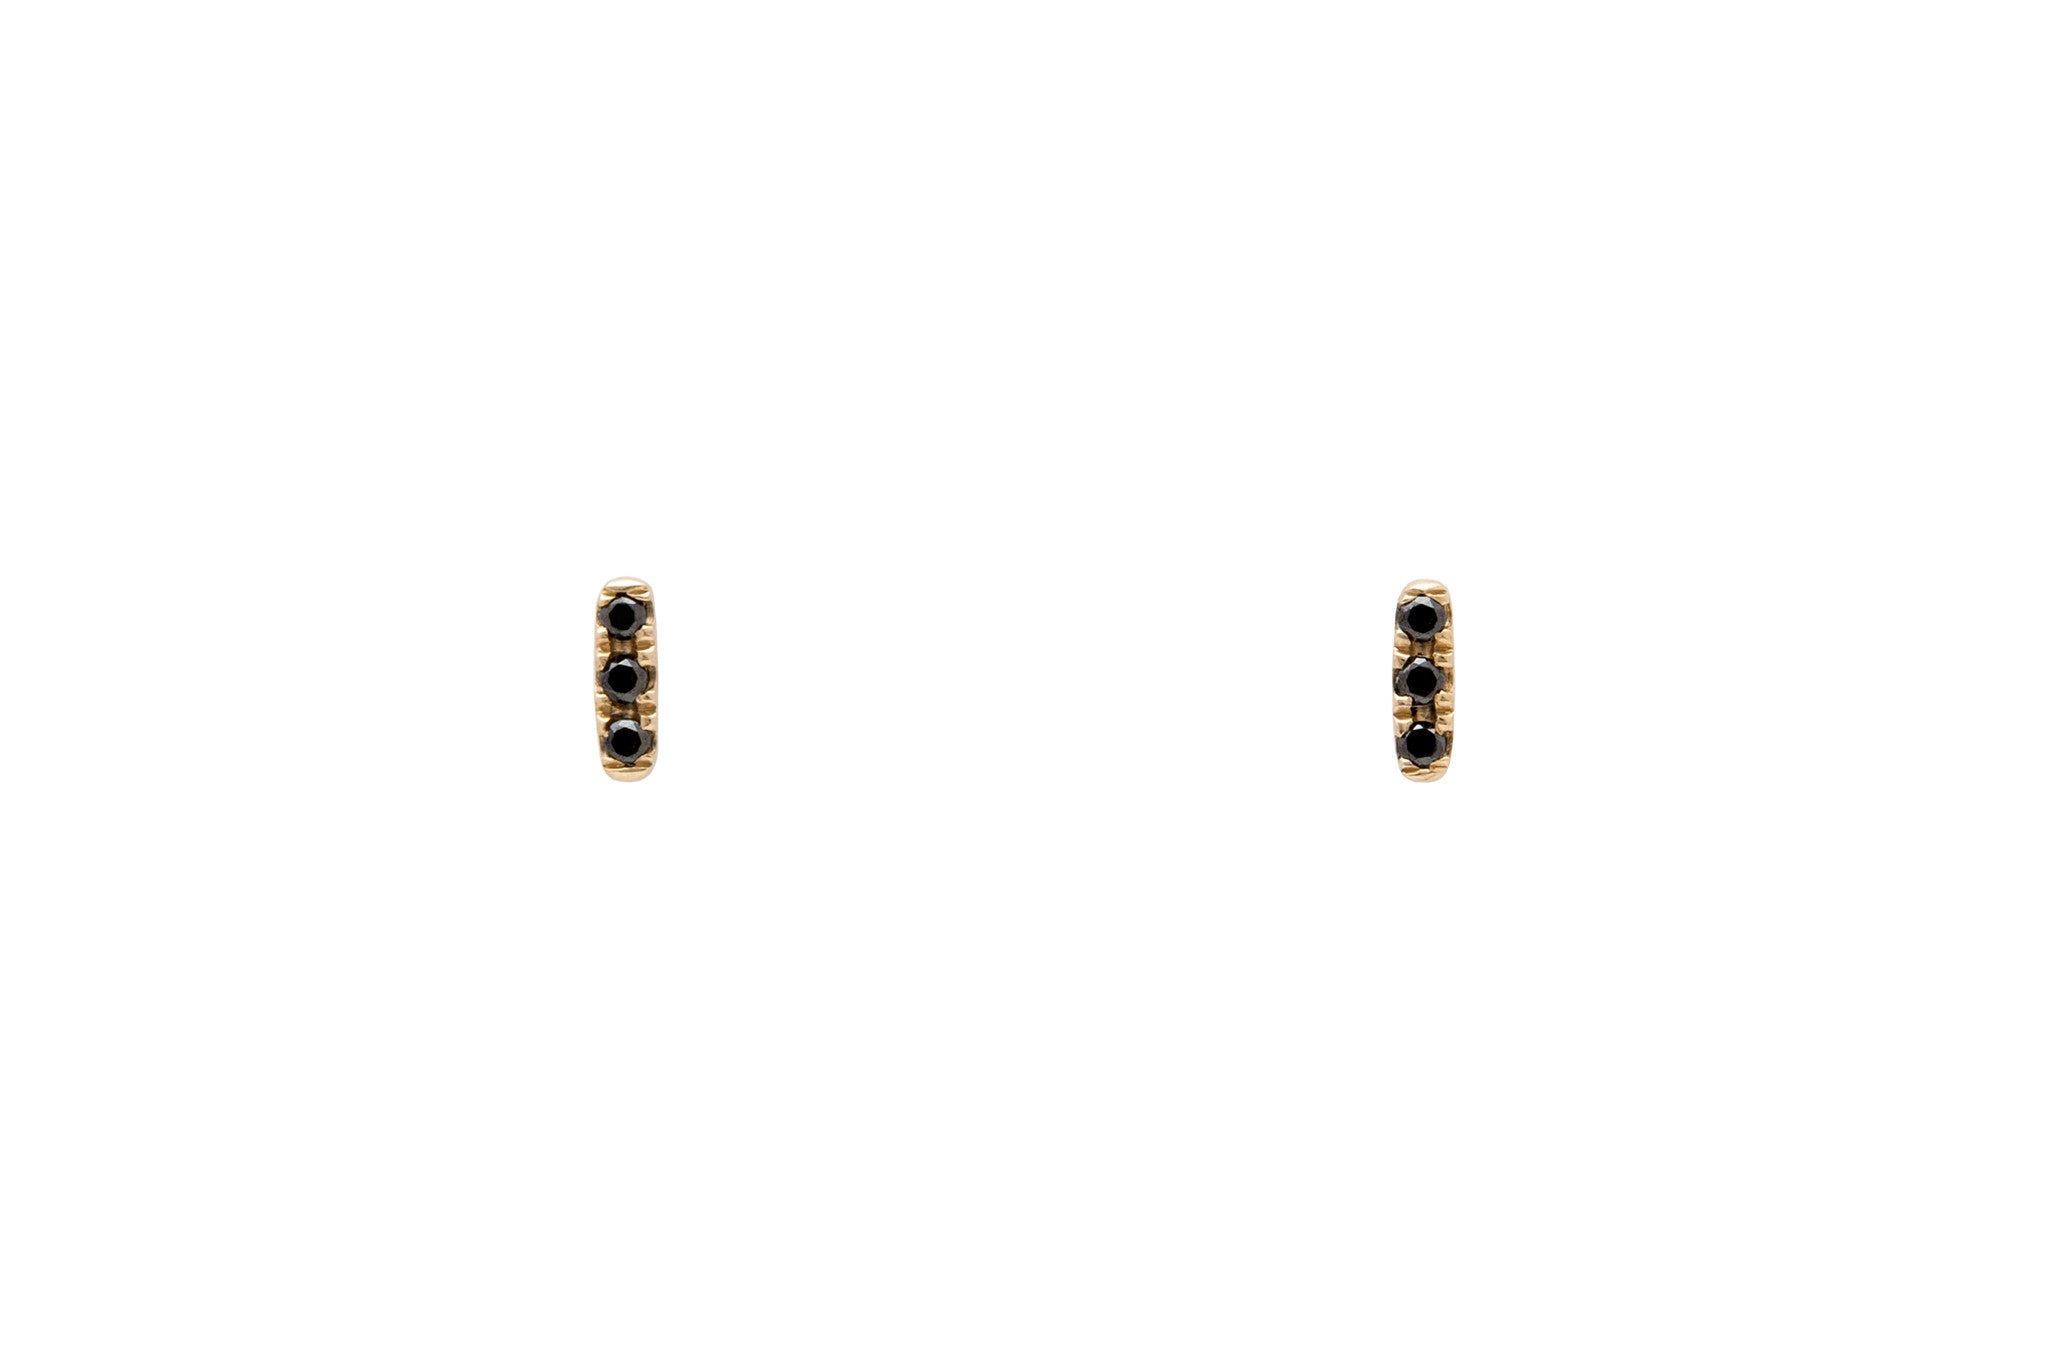 14k Gold Micropavé Three Black Diamond Bar Earrings E2319